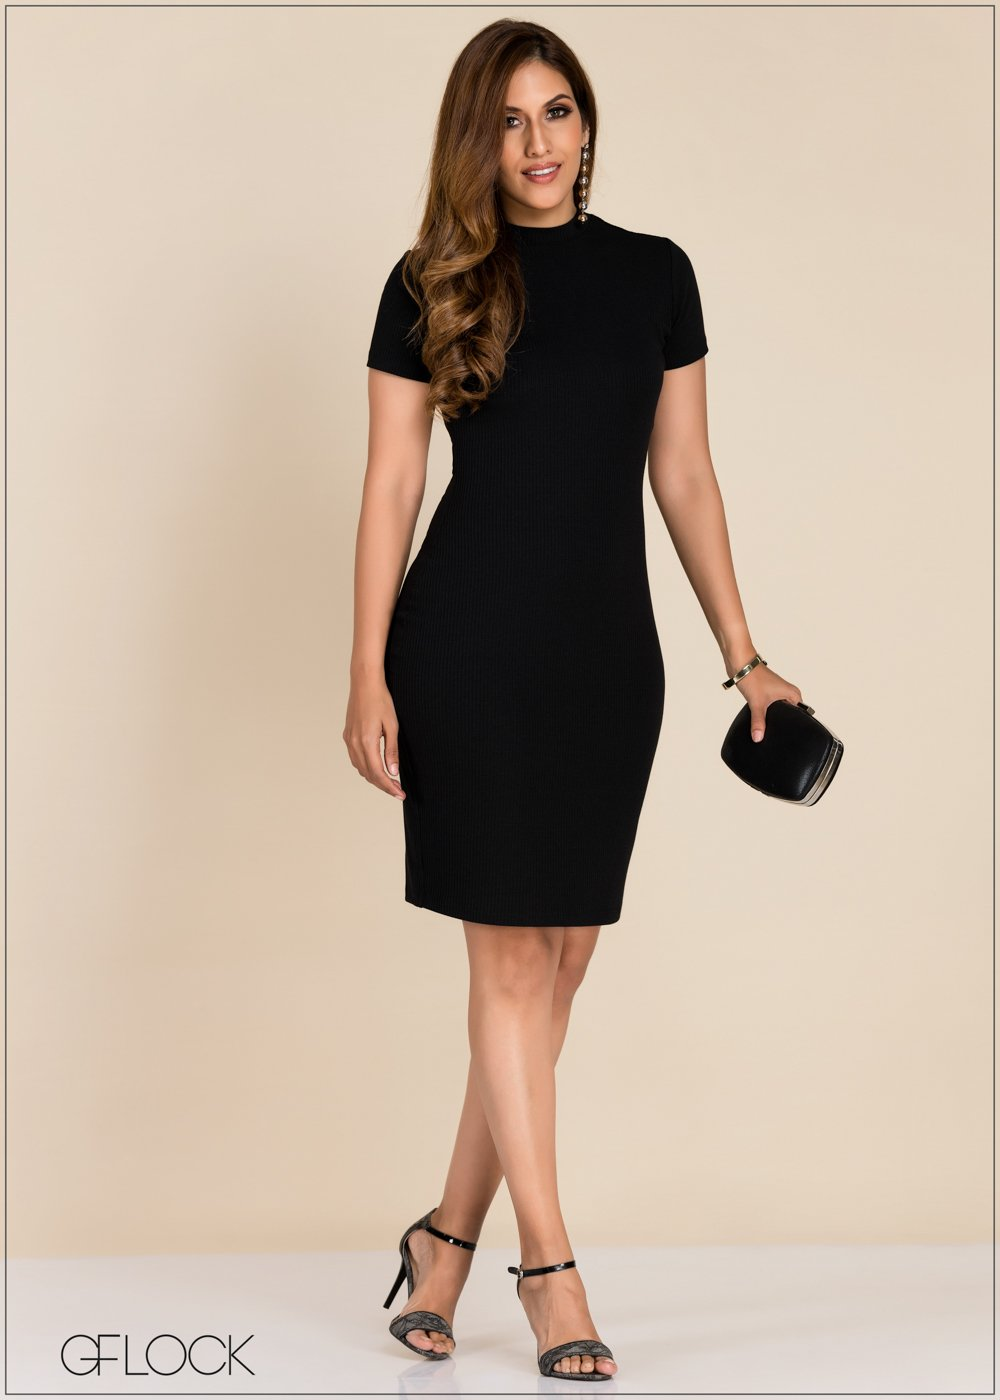 GFLOCK - [product_sku] - Women_Dresses - Rib Bodycon Dress